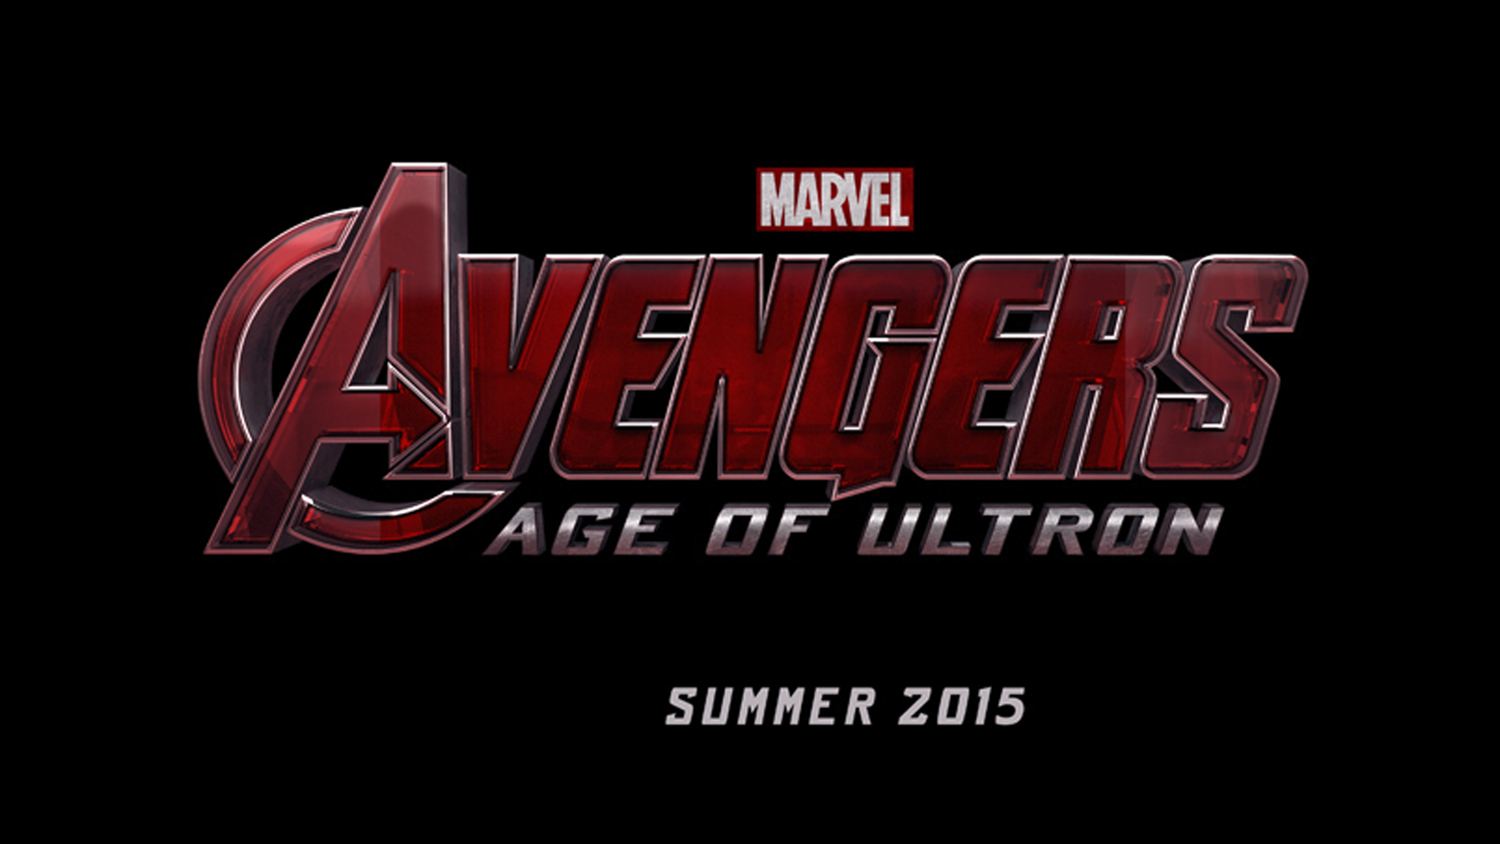 Avengers-Age-of-Ultron-LogoHEADER